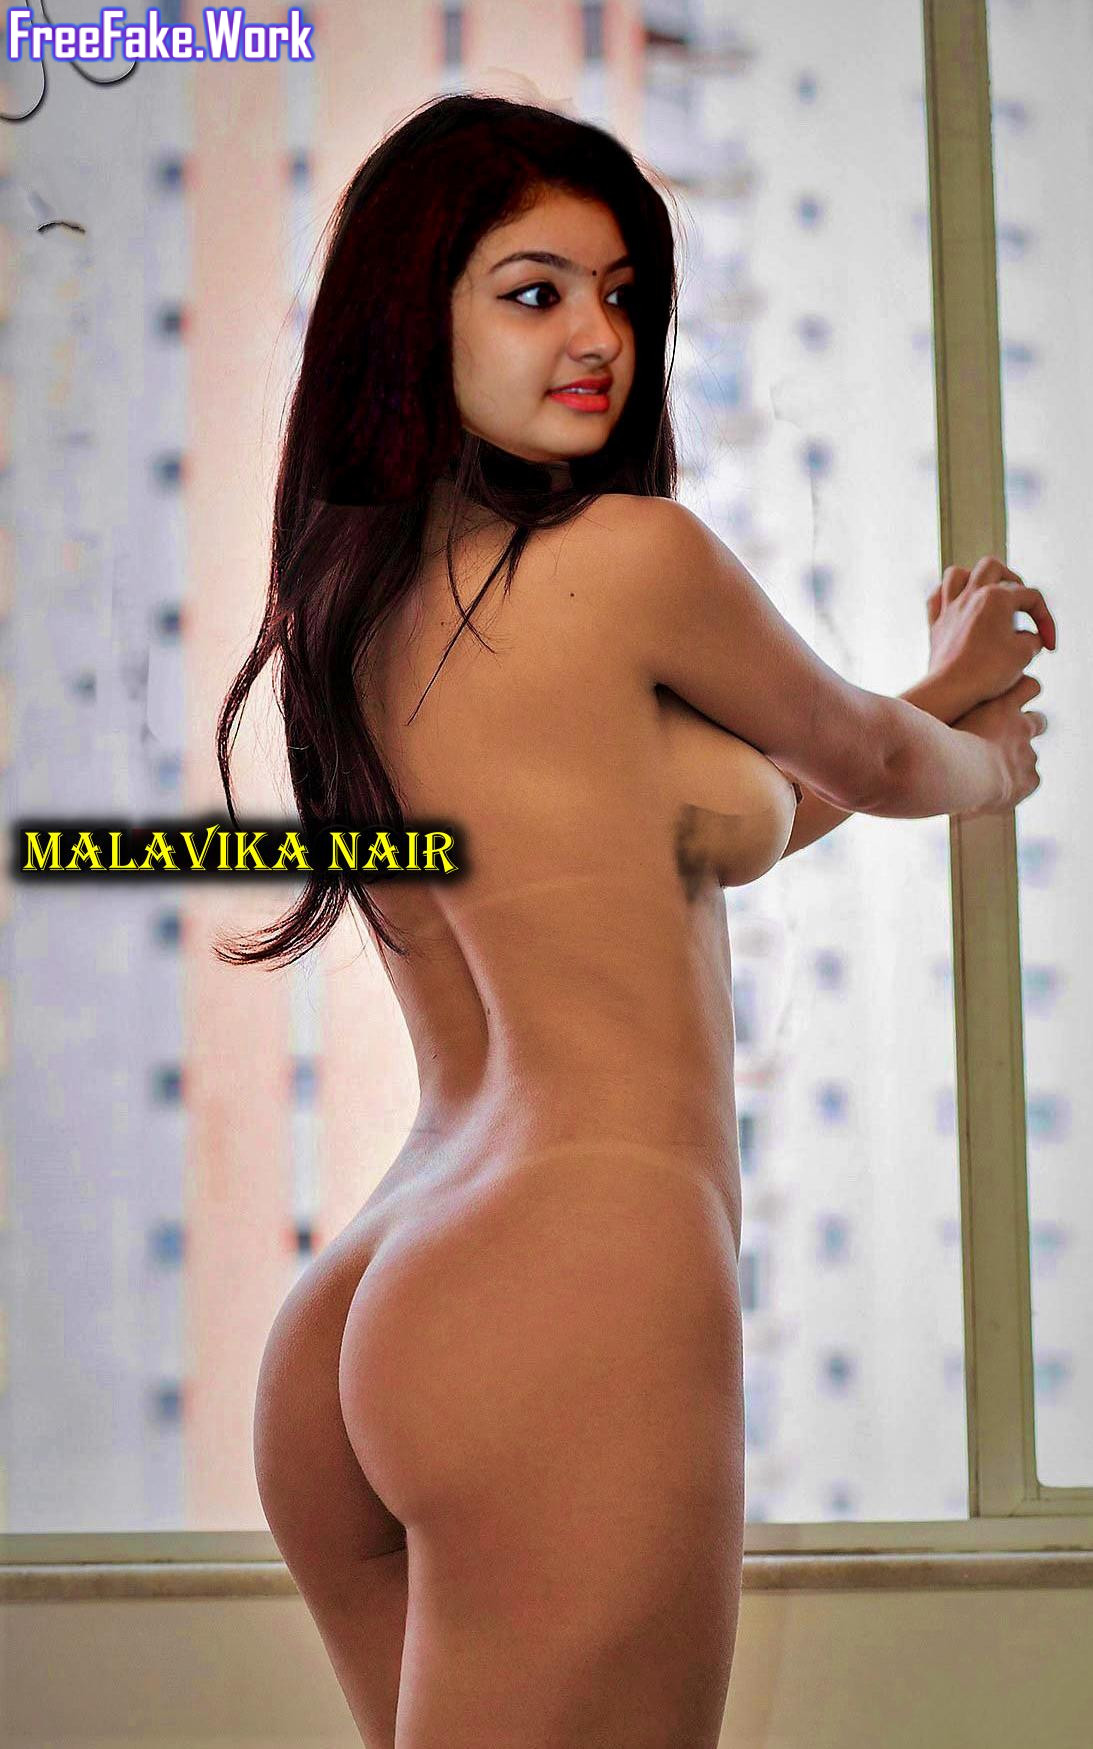 Malavika-Nair-full-nude-back-pose-without-dress-sexy-open-ass.jpg